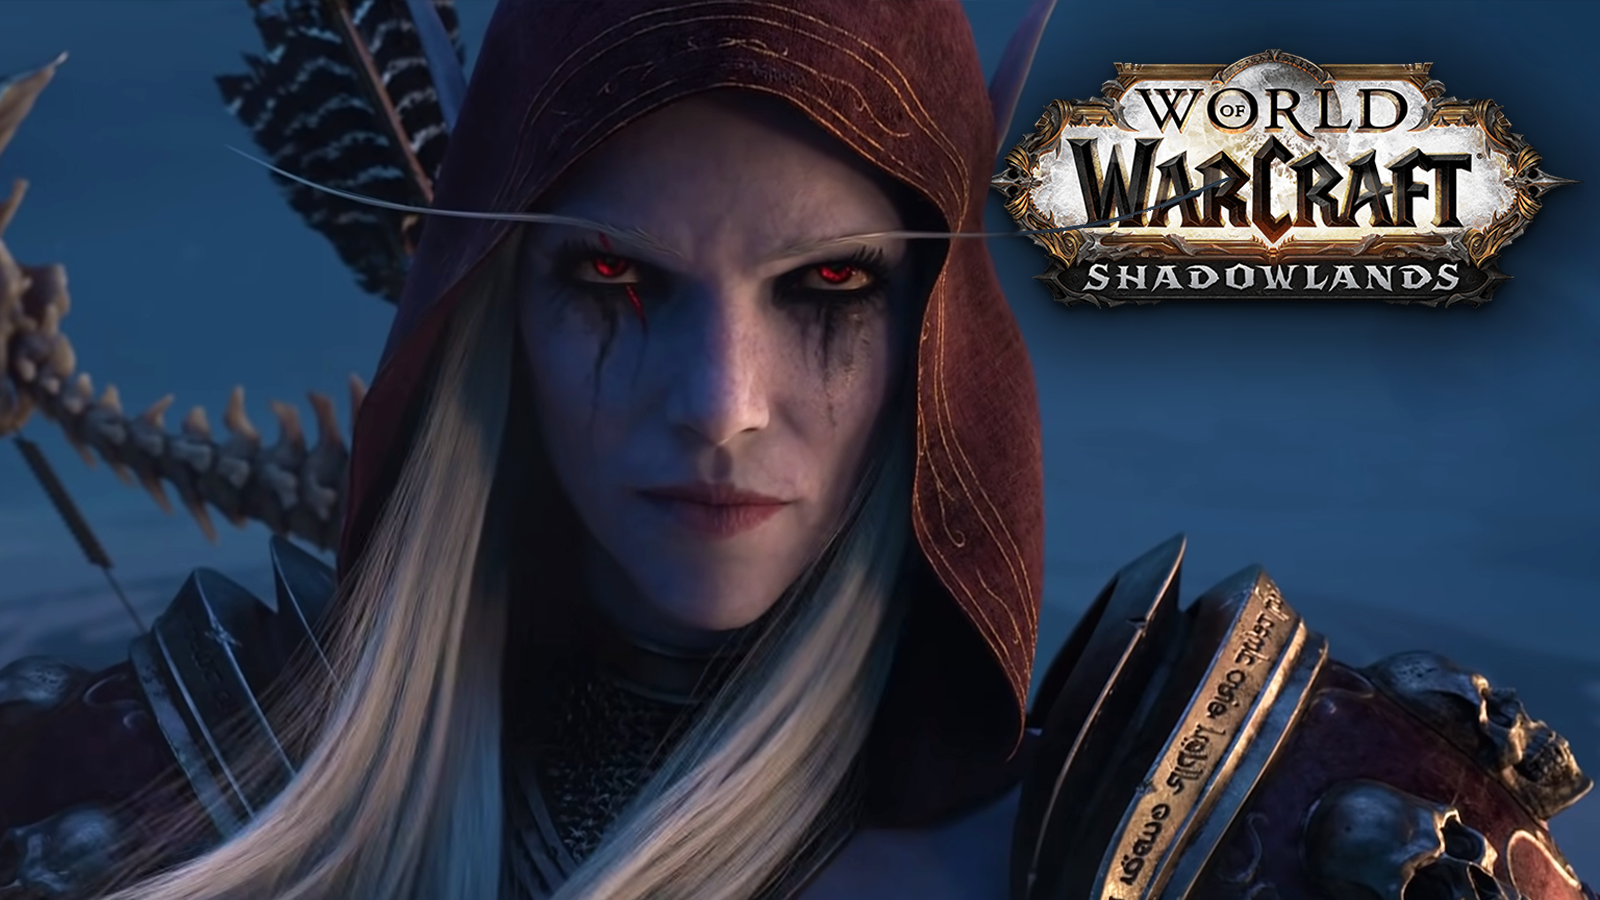 It looks like Sylvanas is fully prepared to destroy Azeroth to achieve her goals in World of Warcraft expansion Shadowlands.